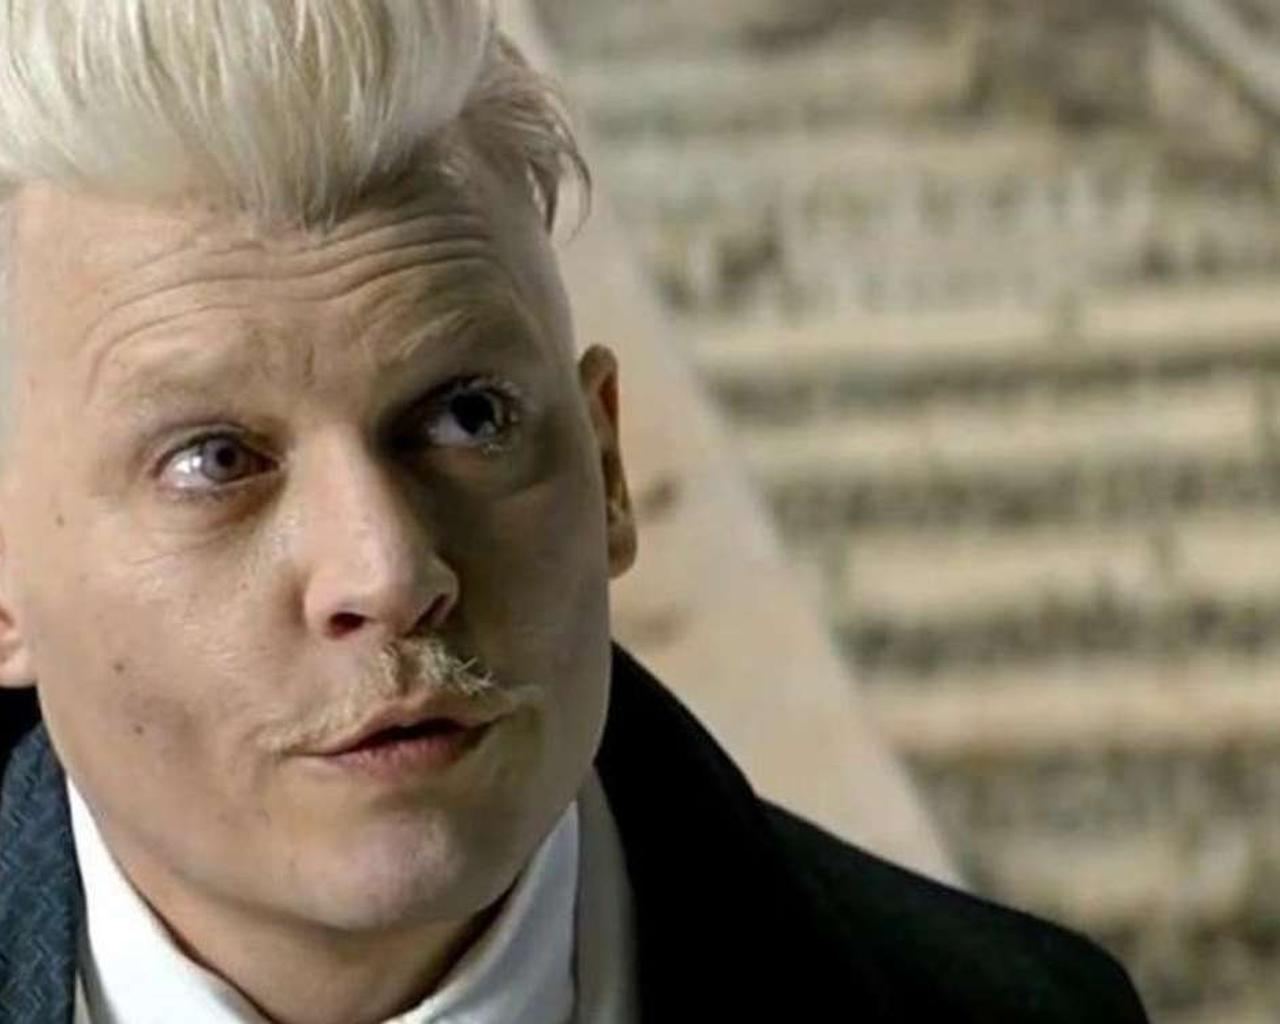 Johnny Depp's Future In The Harry Potter Universe In Limbo—Studio May End Up Doing Damage Control